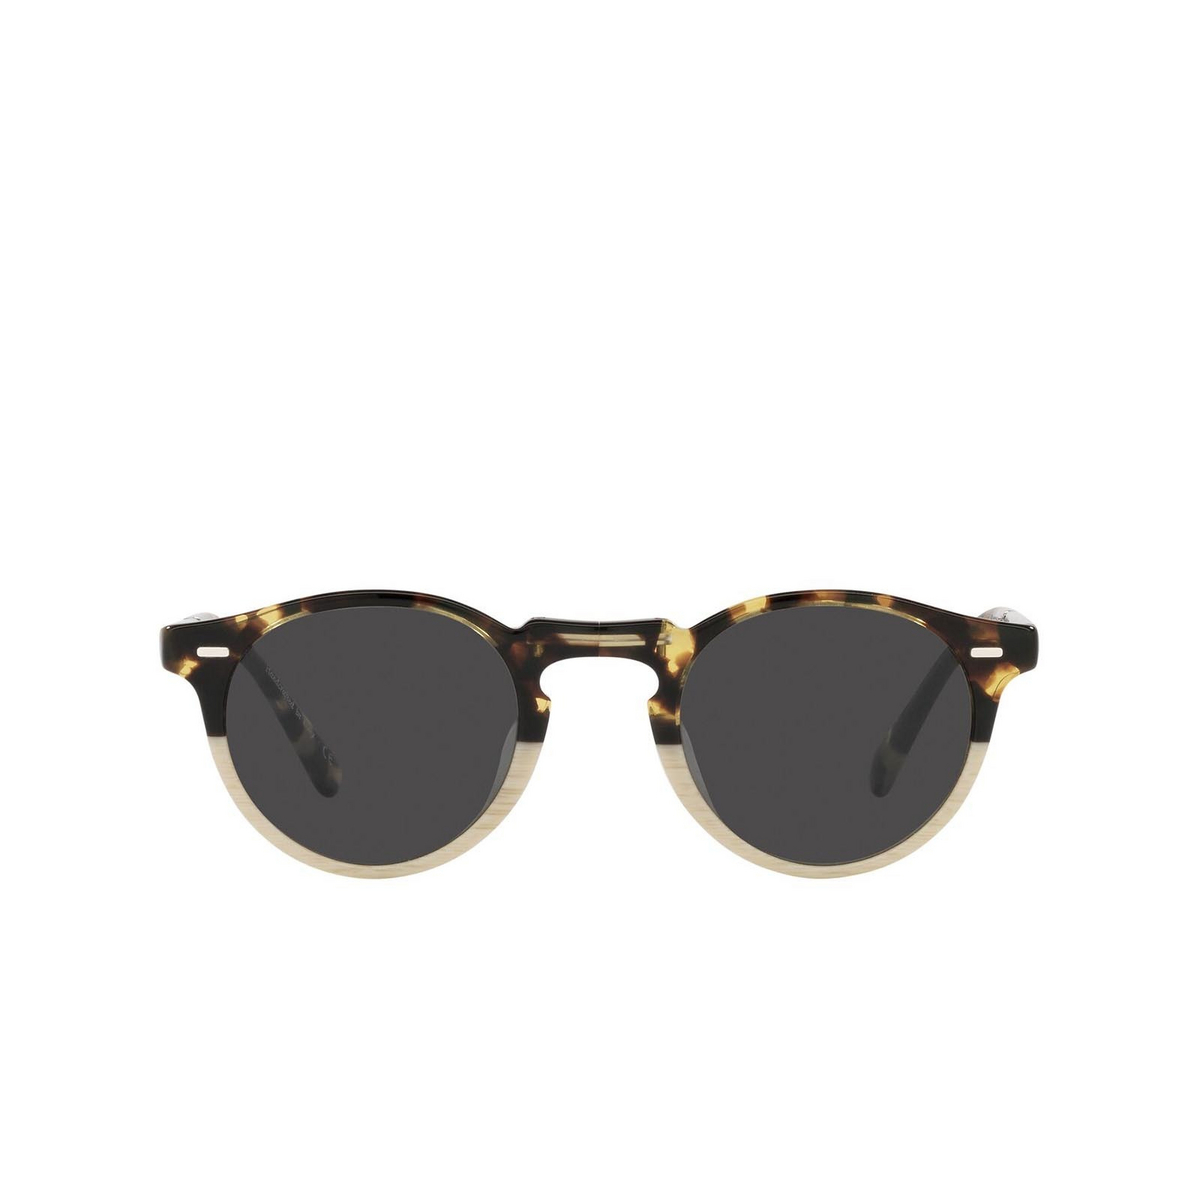 Oliver Peoples® Round Sunglasses: Gregory Peck 1962 OV5456SU color Dtb/beige Gradient 1589R5 - front view.